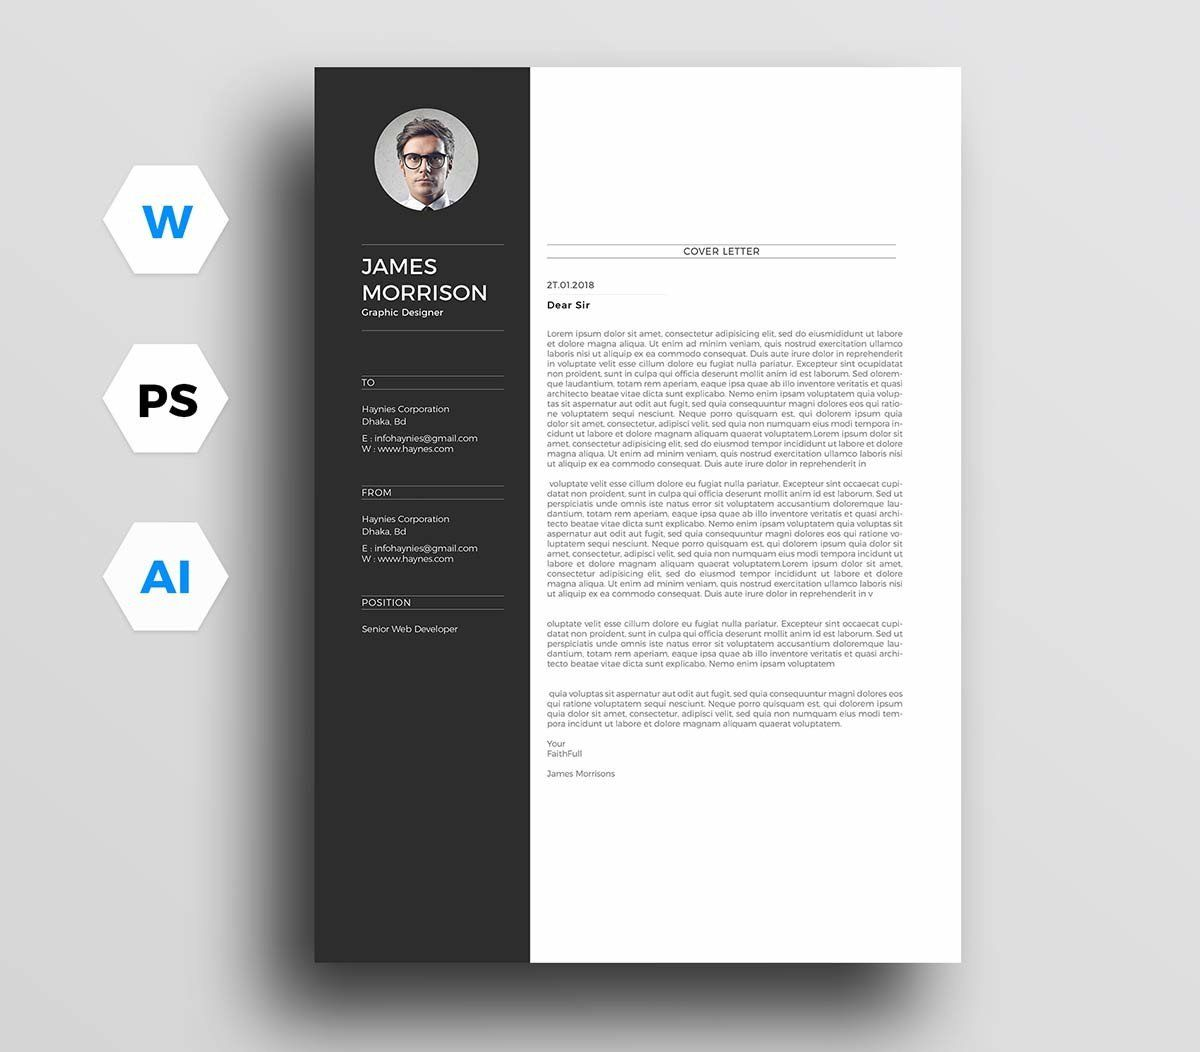 003 Archaicawful Cover Letter Template Download Pdf Photo  FreeFull